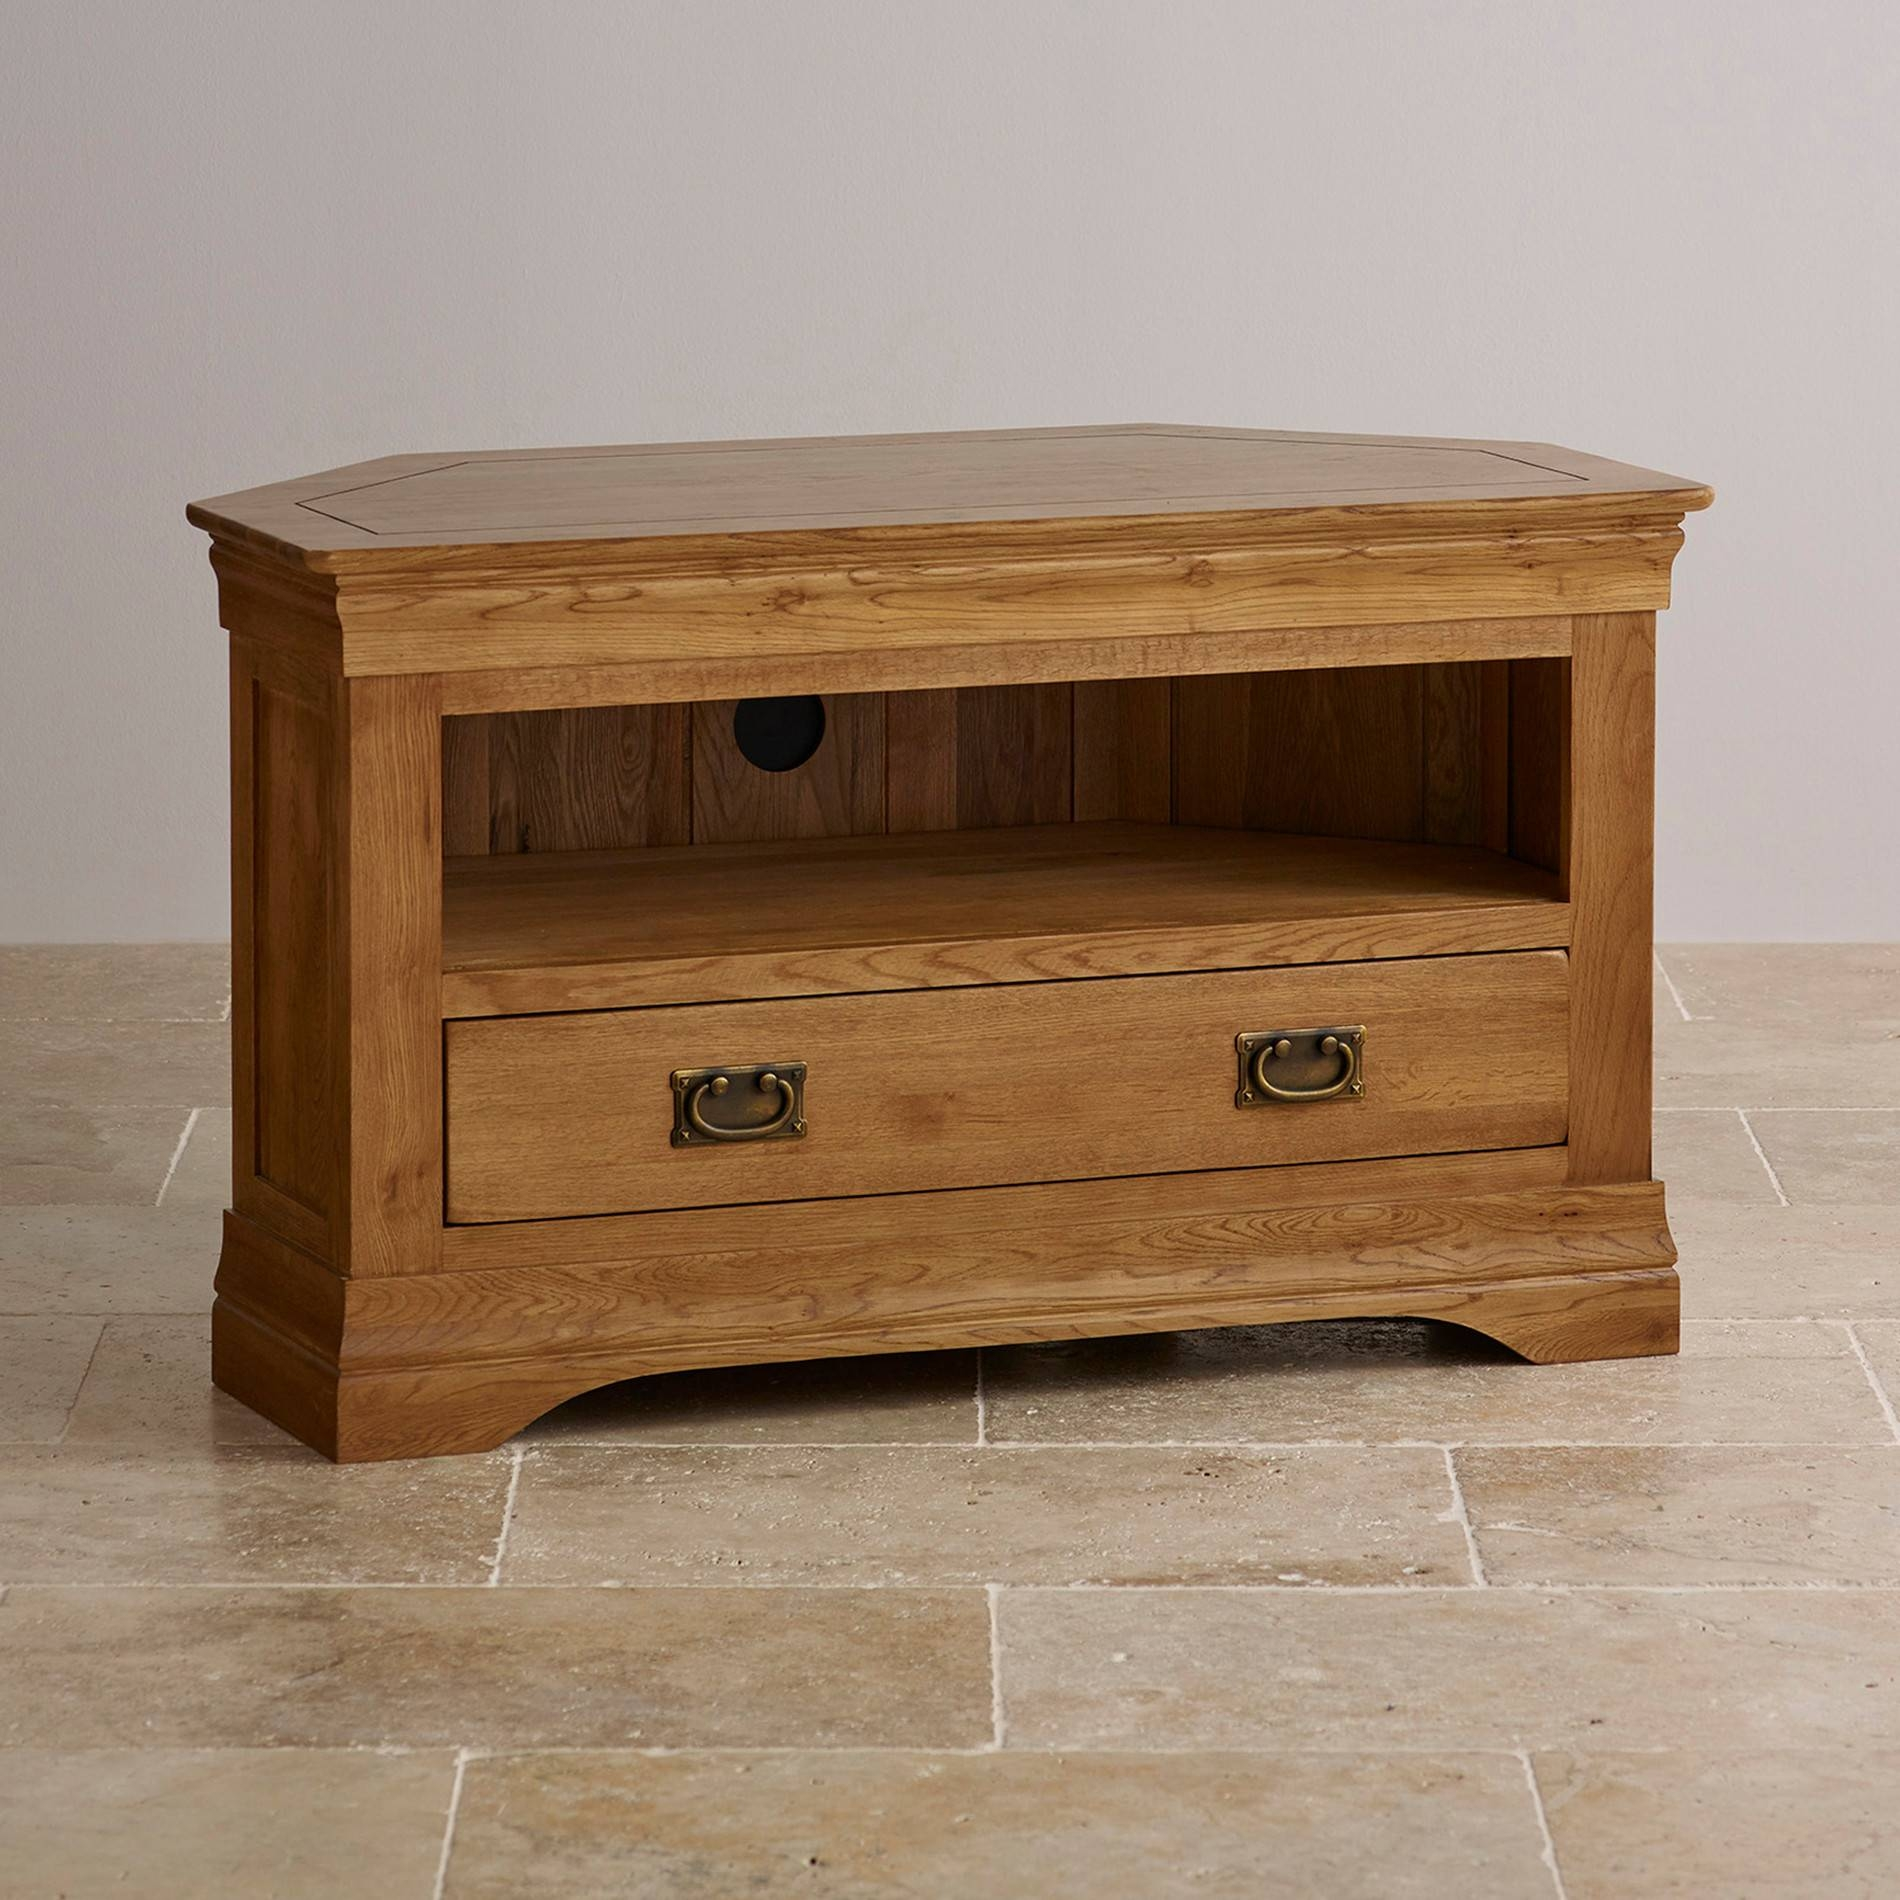 French Farmhouse Corner Tv Unit | Solid Oak | Oak Furniture Land with regard to Wooden Corner Tv Cabinets (Image 3 of 15)